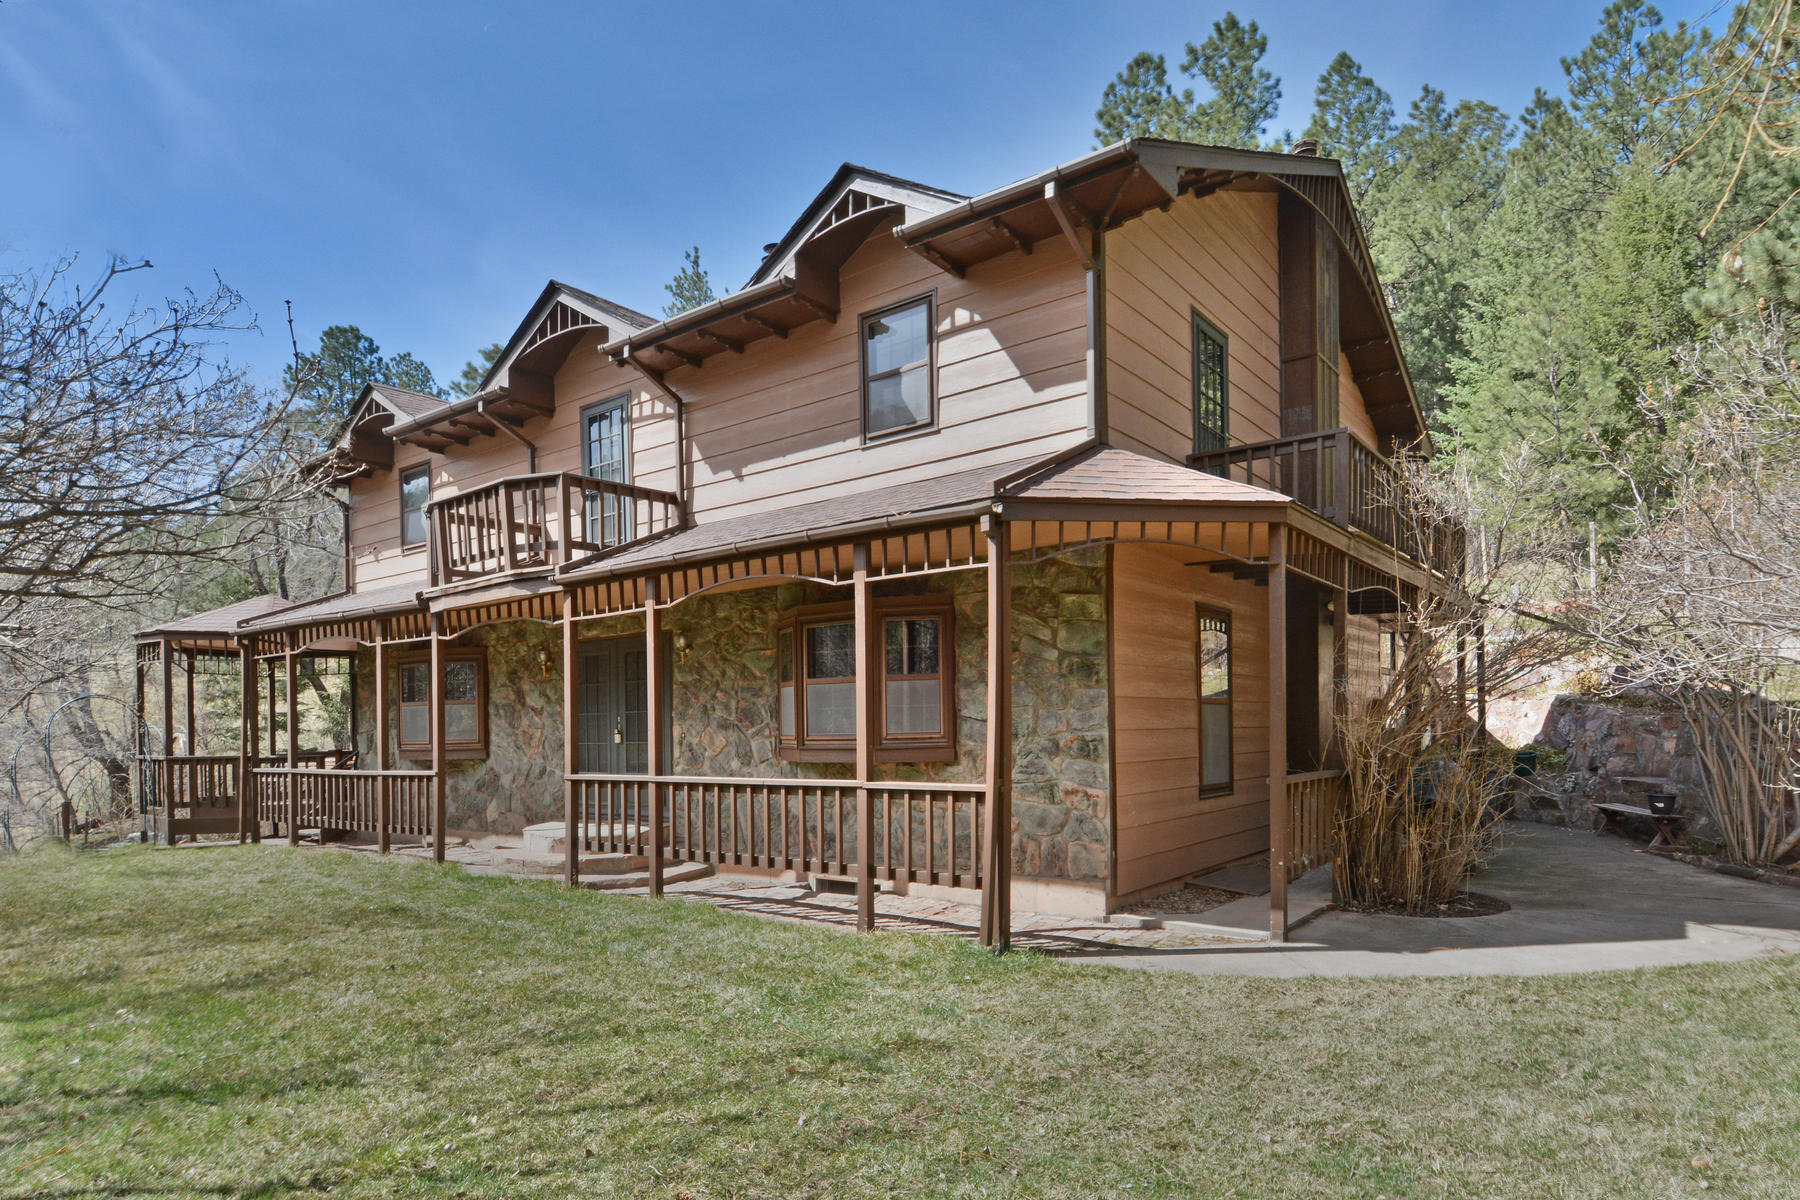 Single Family Home for Active at Picturesque North Boulder Foothills Retreat 750 Valley Ln Boulder, Colorado 80302 United States